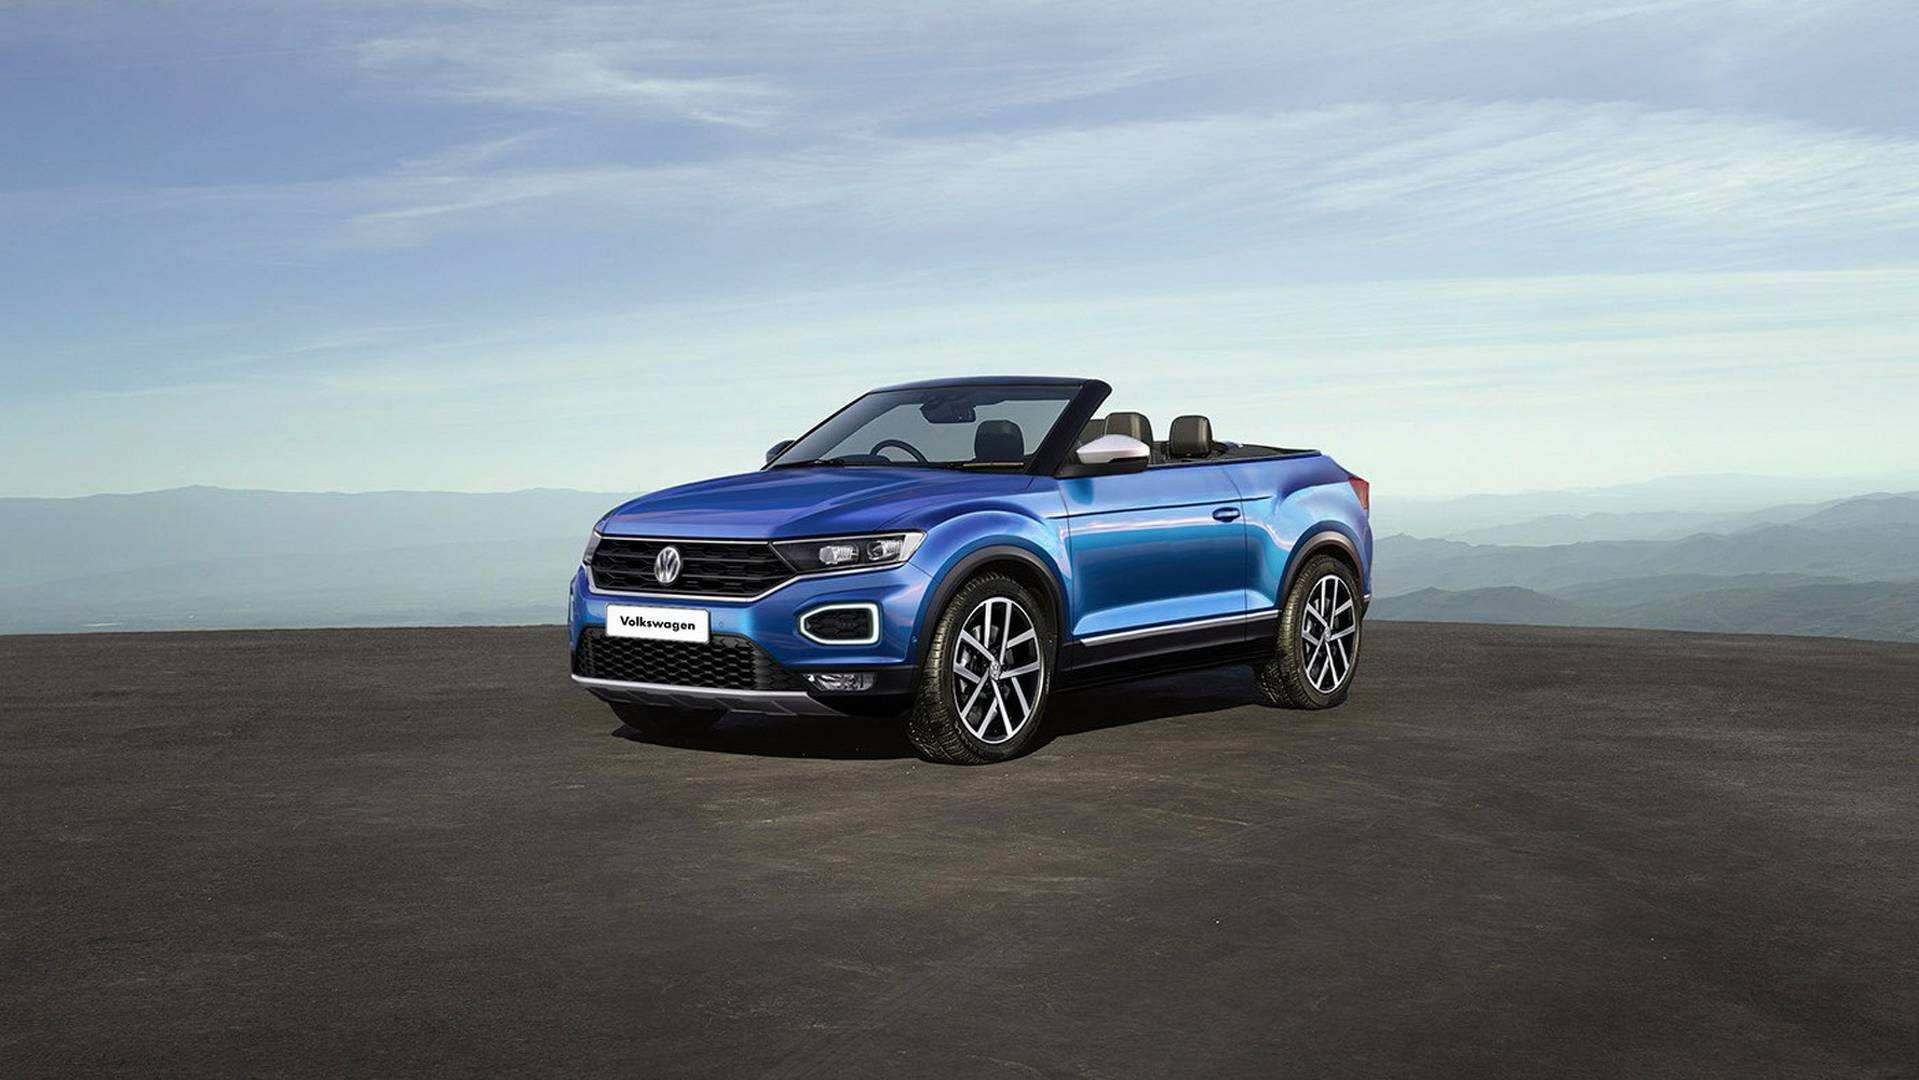 48 Gallery of Volkswagen T Roc Cabrio 2020 Performance and New Engine with Volkswagen T Roc Cabrio 2020